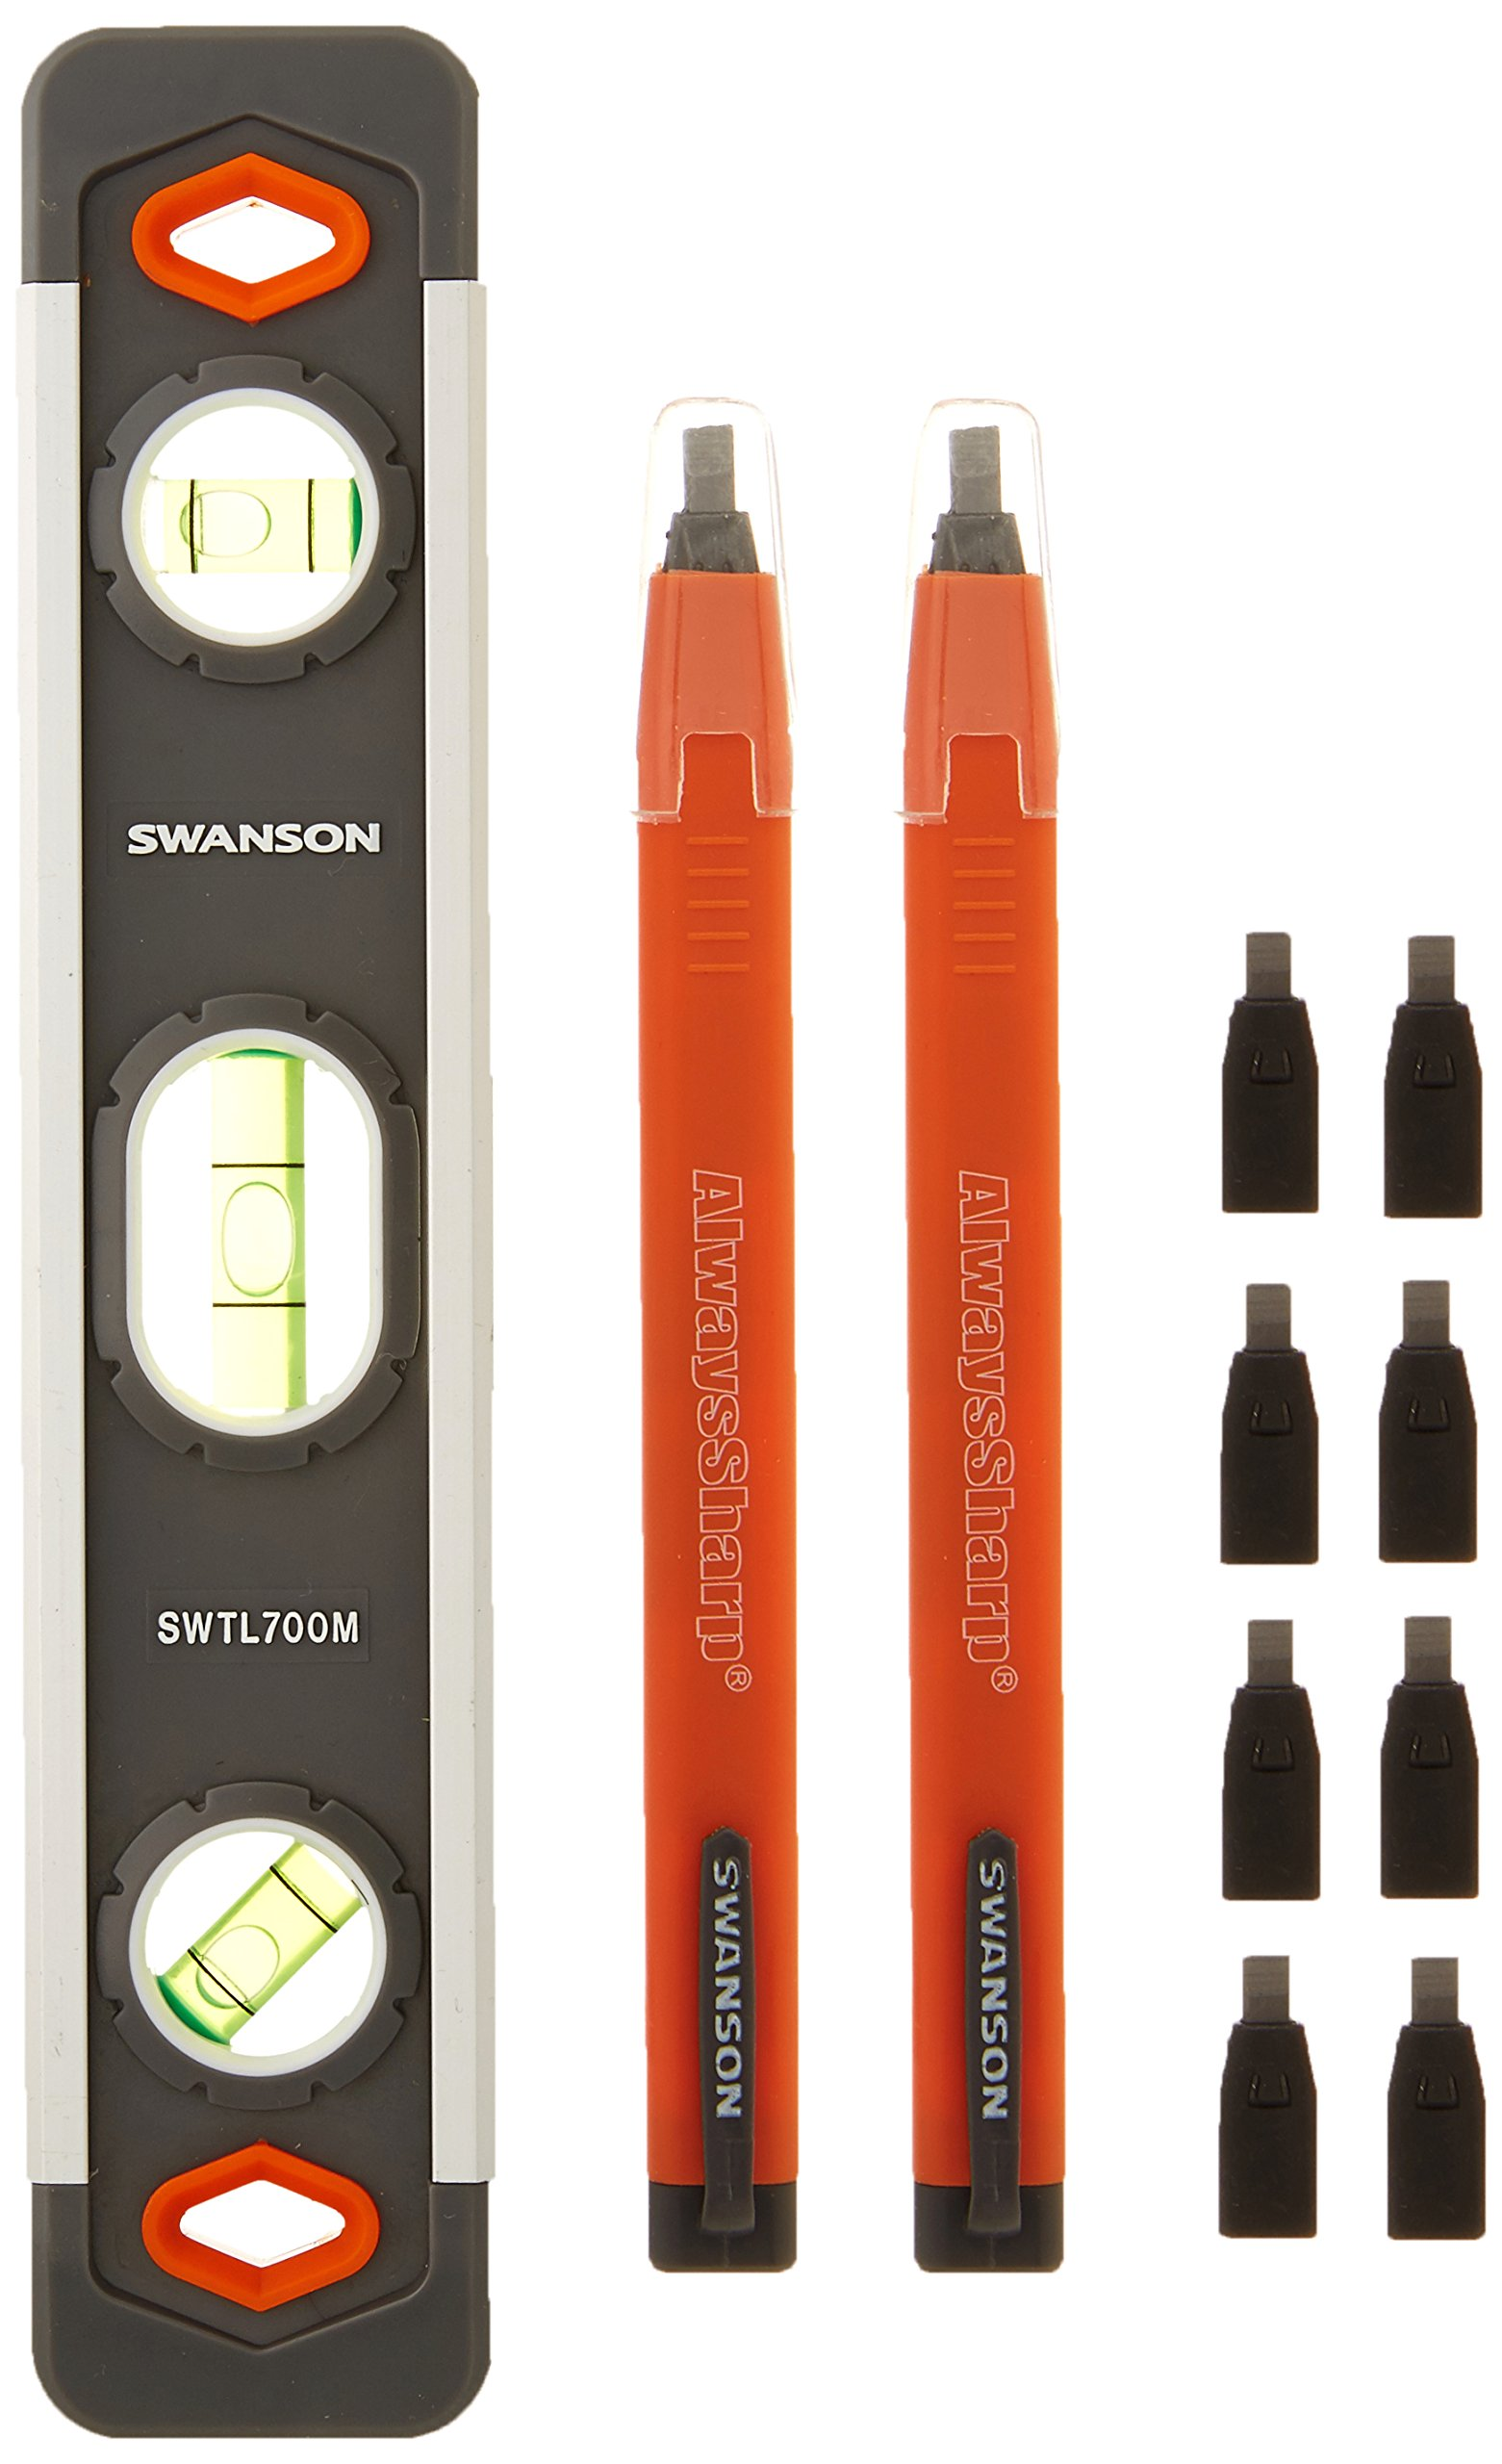 Swanson pack of 2 Mechanical Carpenter Pencils with 24 Graphite Cartridges and a Magnetic Torpedo Level